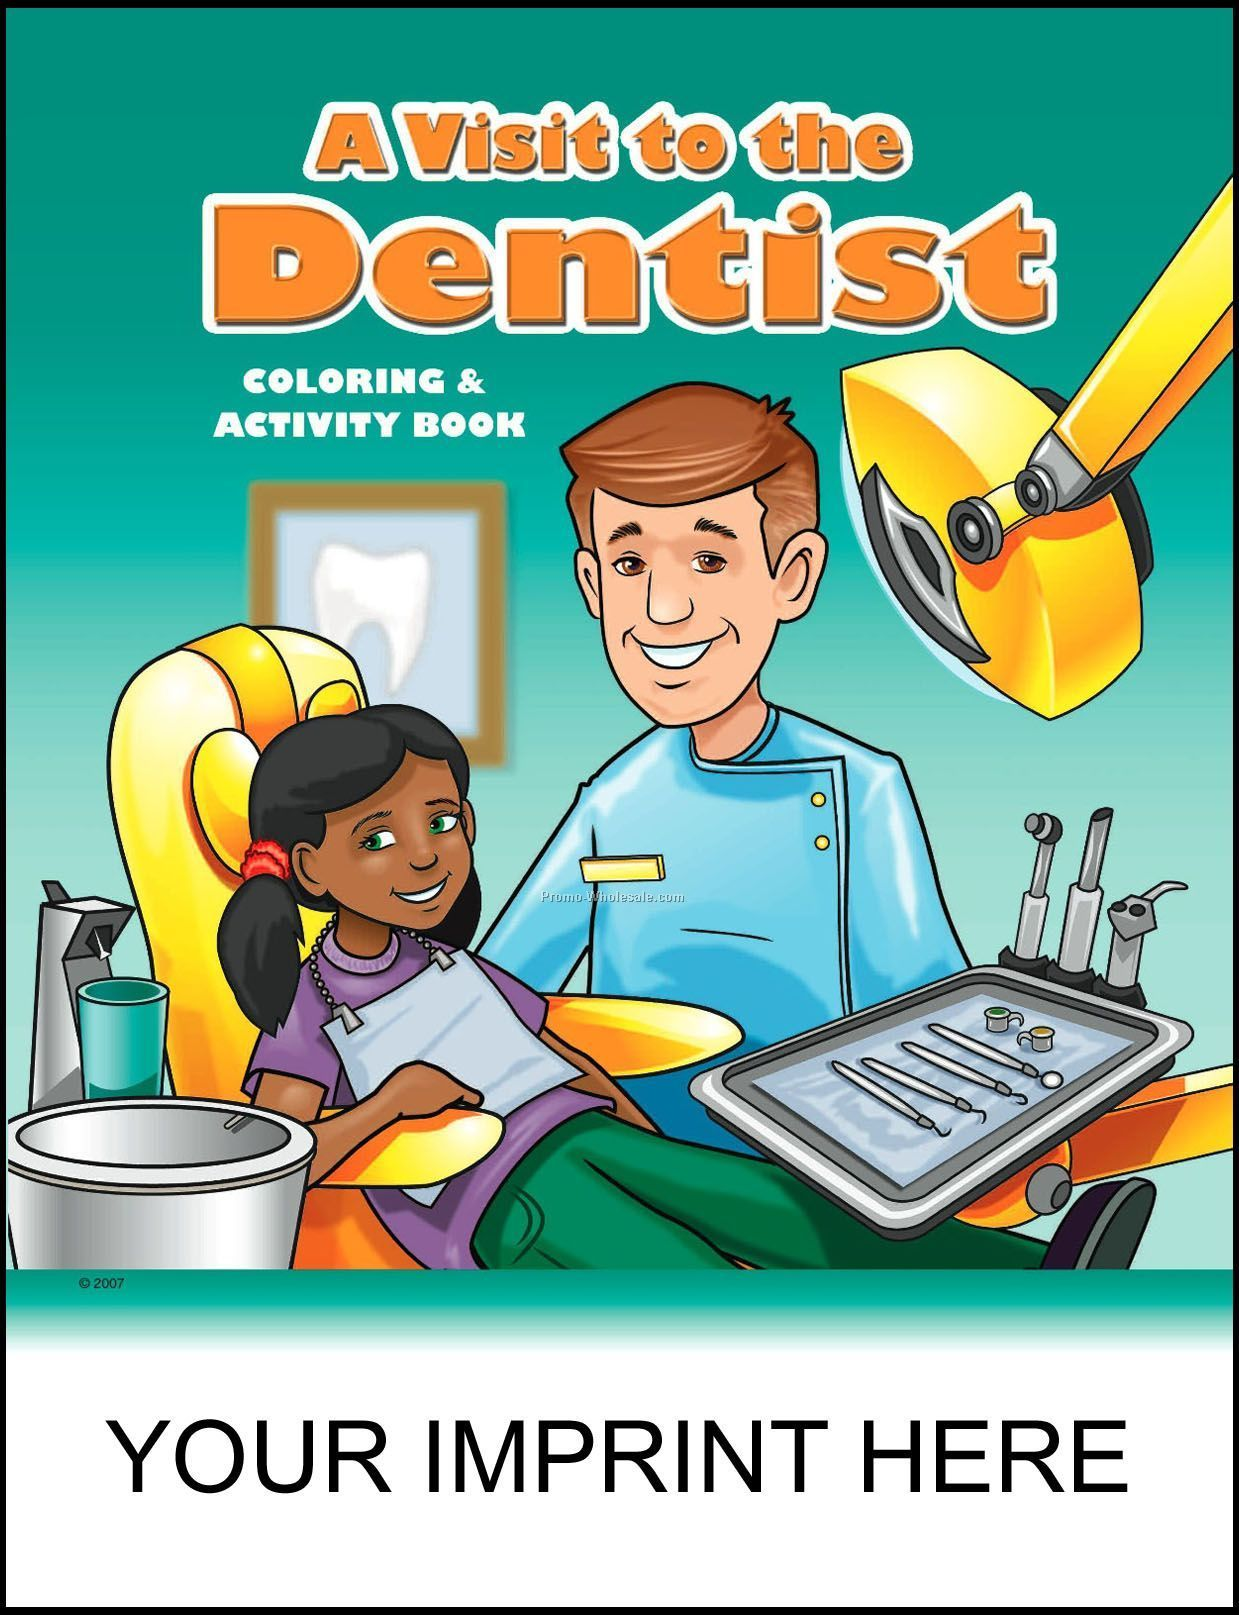 how to avoid going to the dentist